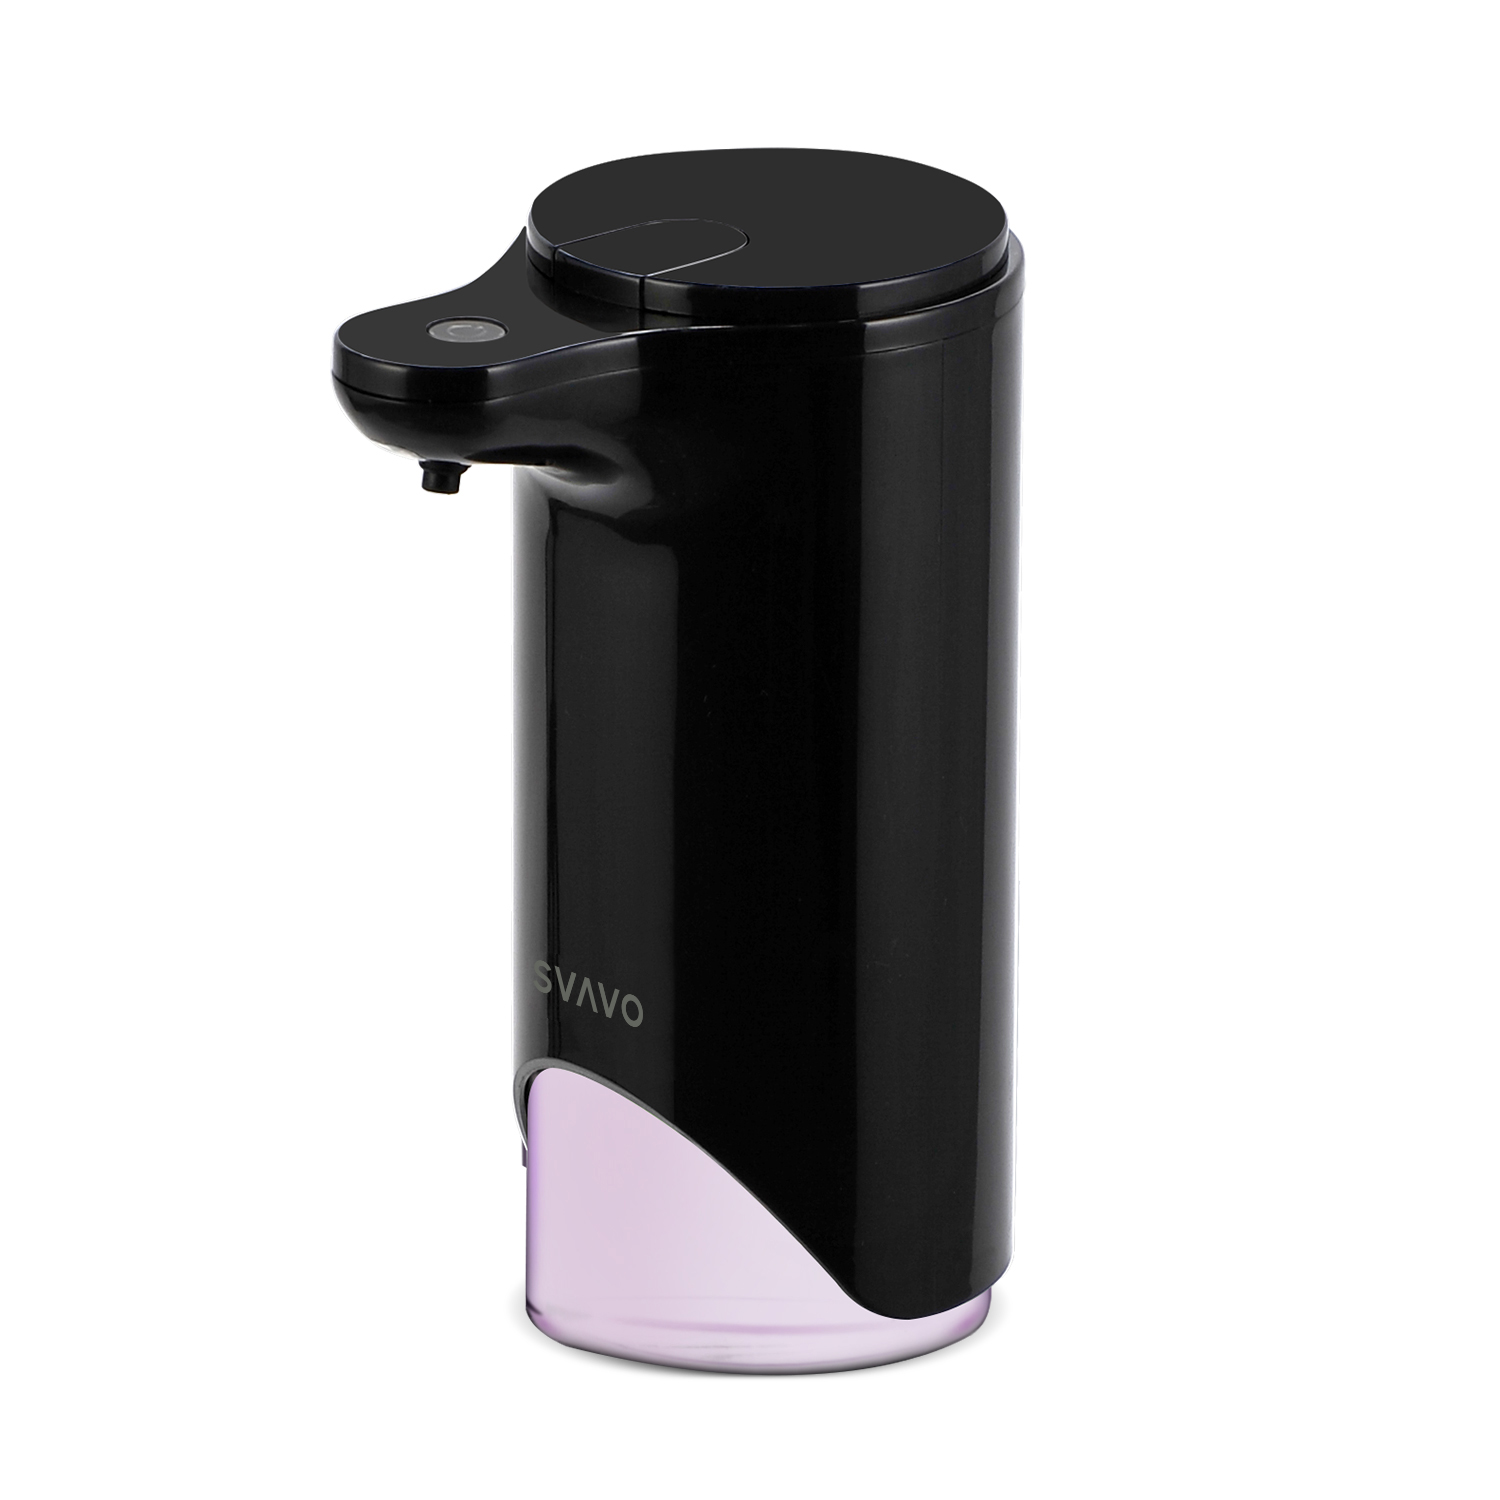 hands free foaming soap dispenser.jpg